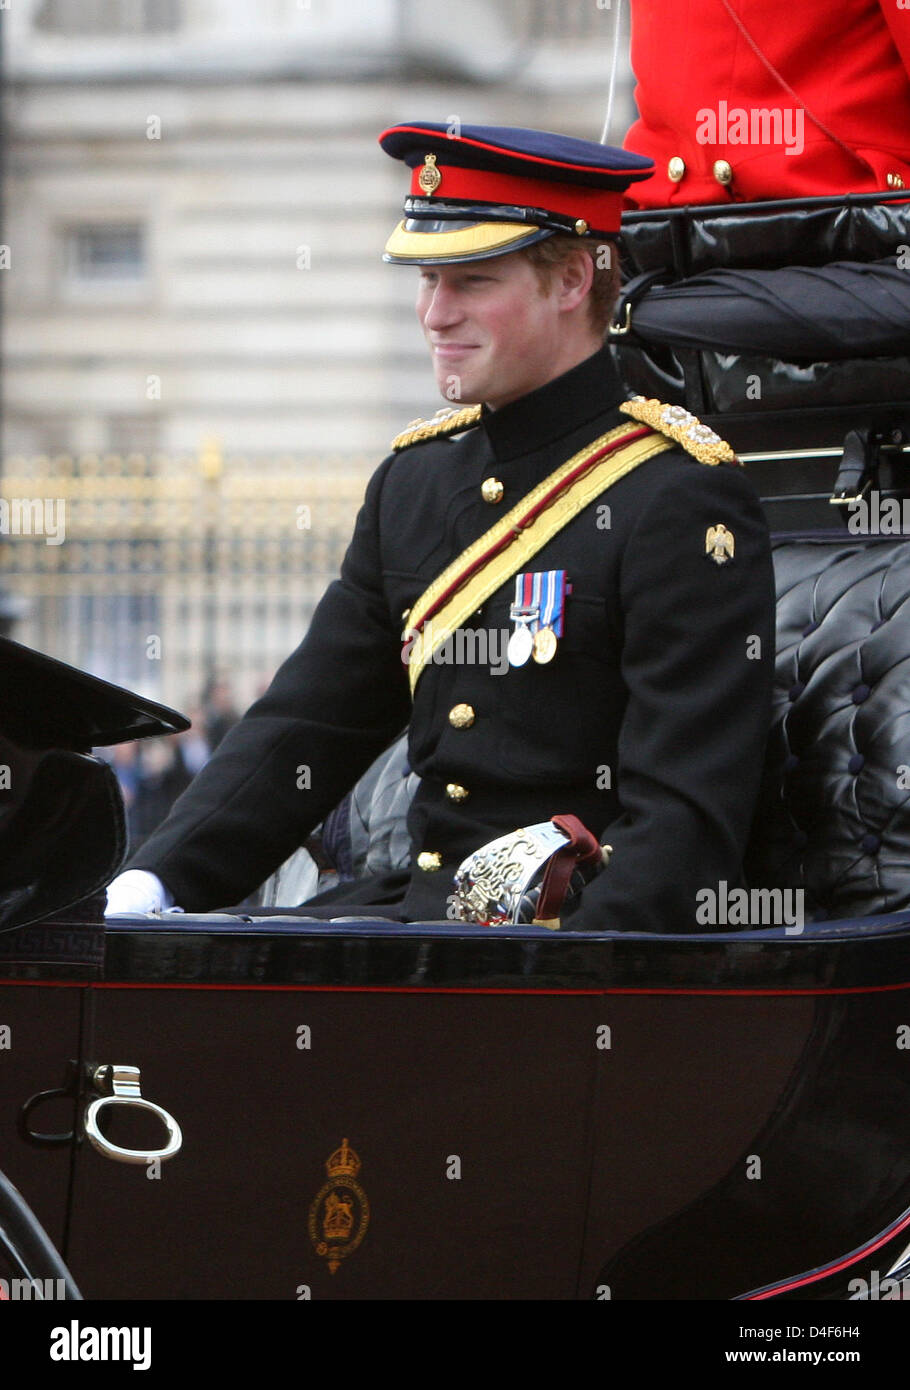 Prince Harry is pictured at the 2008 Trooping the Colour parade in London, United Kingdom, 14 June 2008. The parade Stock Photo